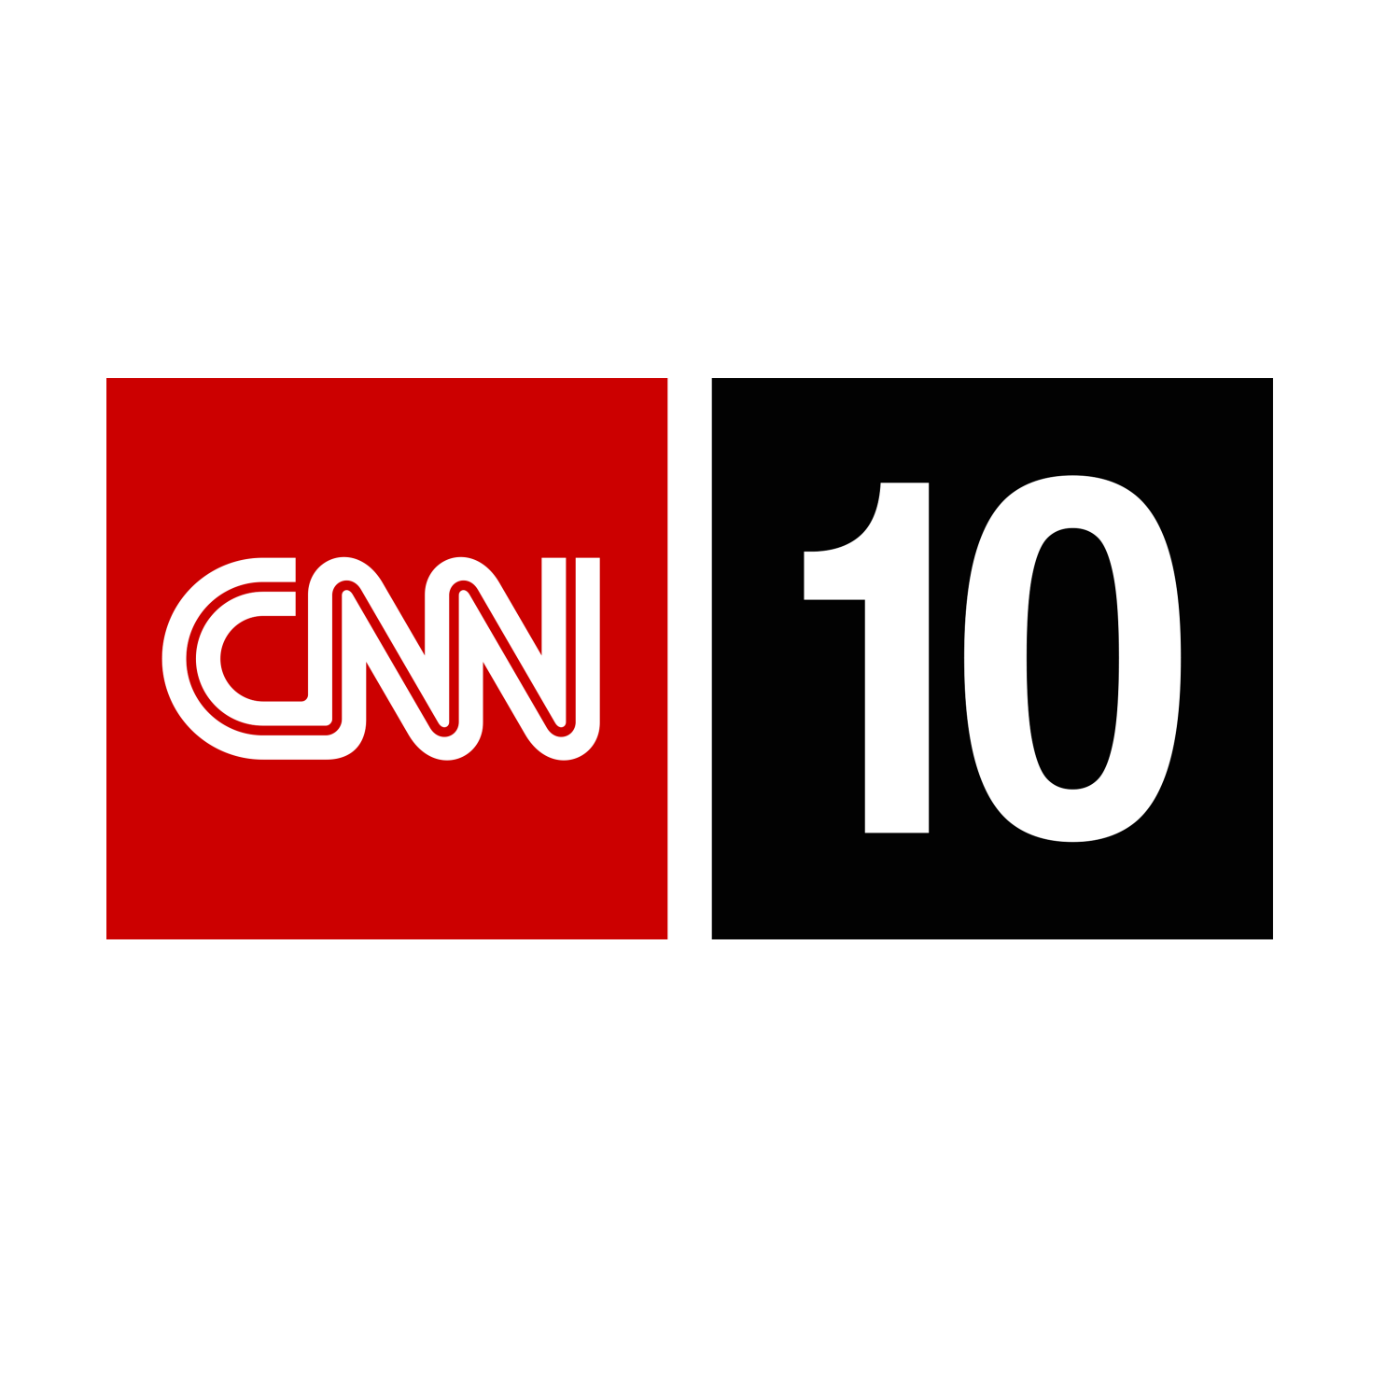 CNN Student News - May 9, 2013